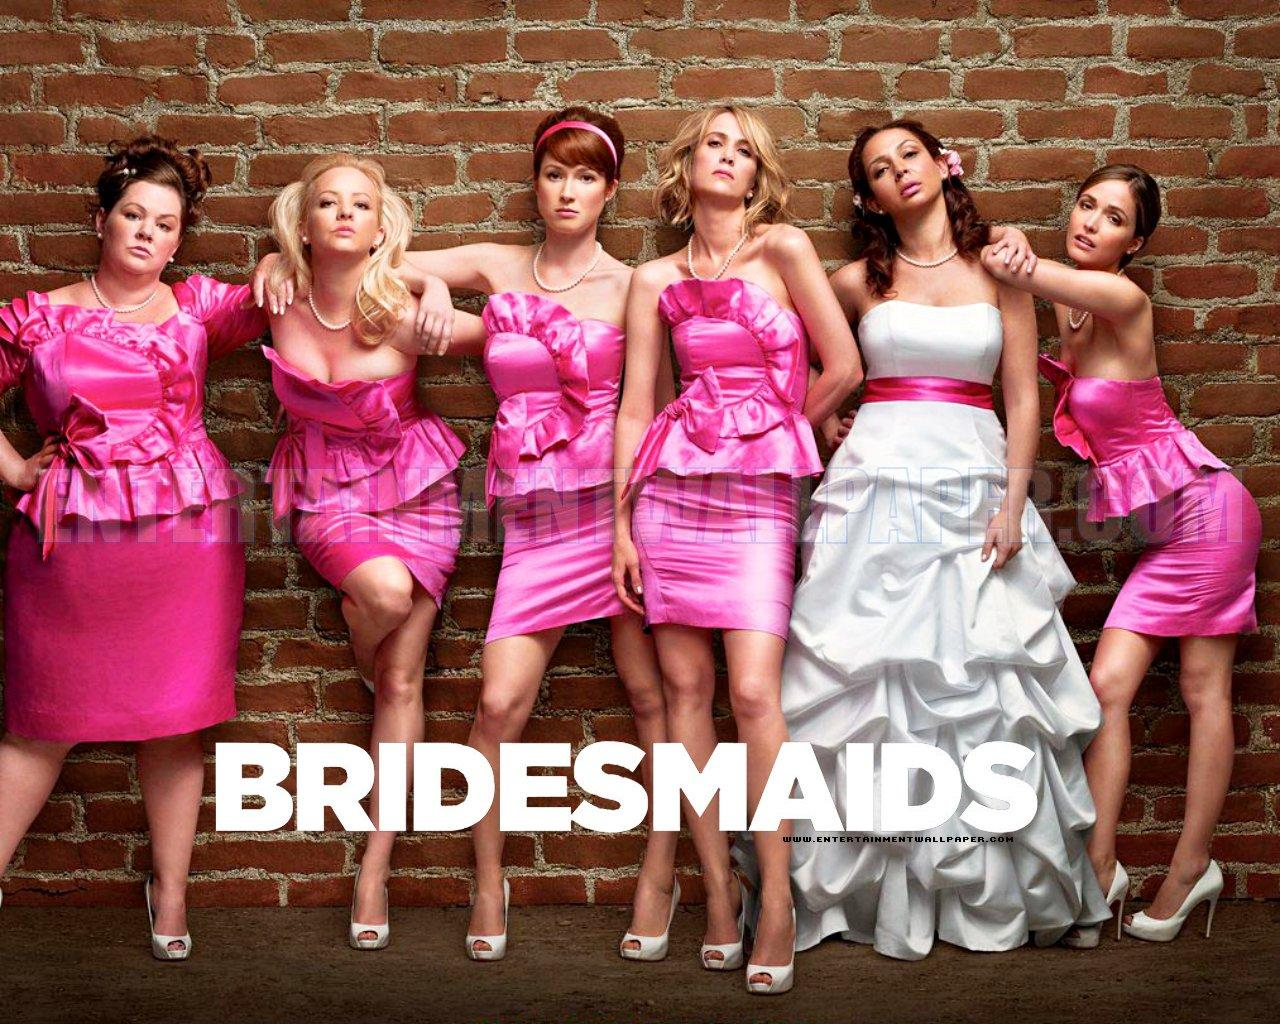 Pattern dresses for bridesmaids philly in love bridal shower themes bridesmaids the movie wedding dress ombrellifo Image collections